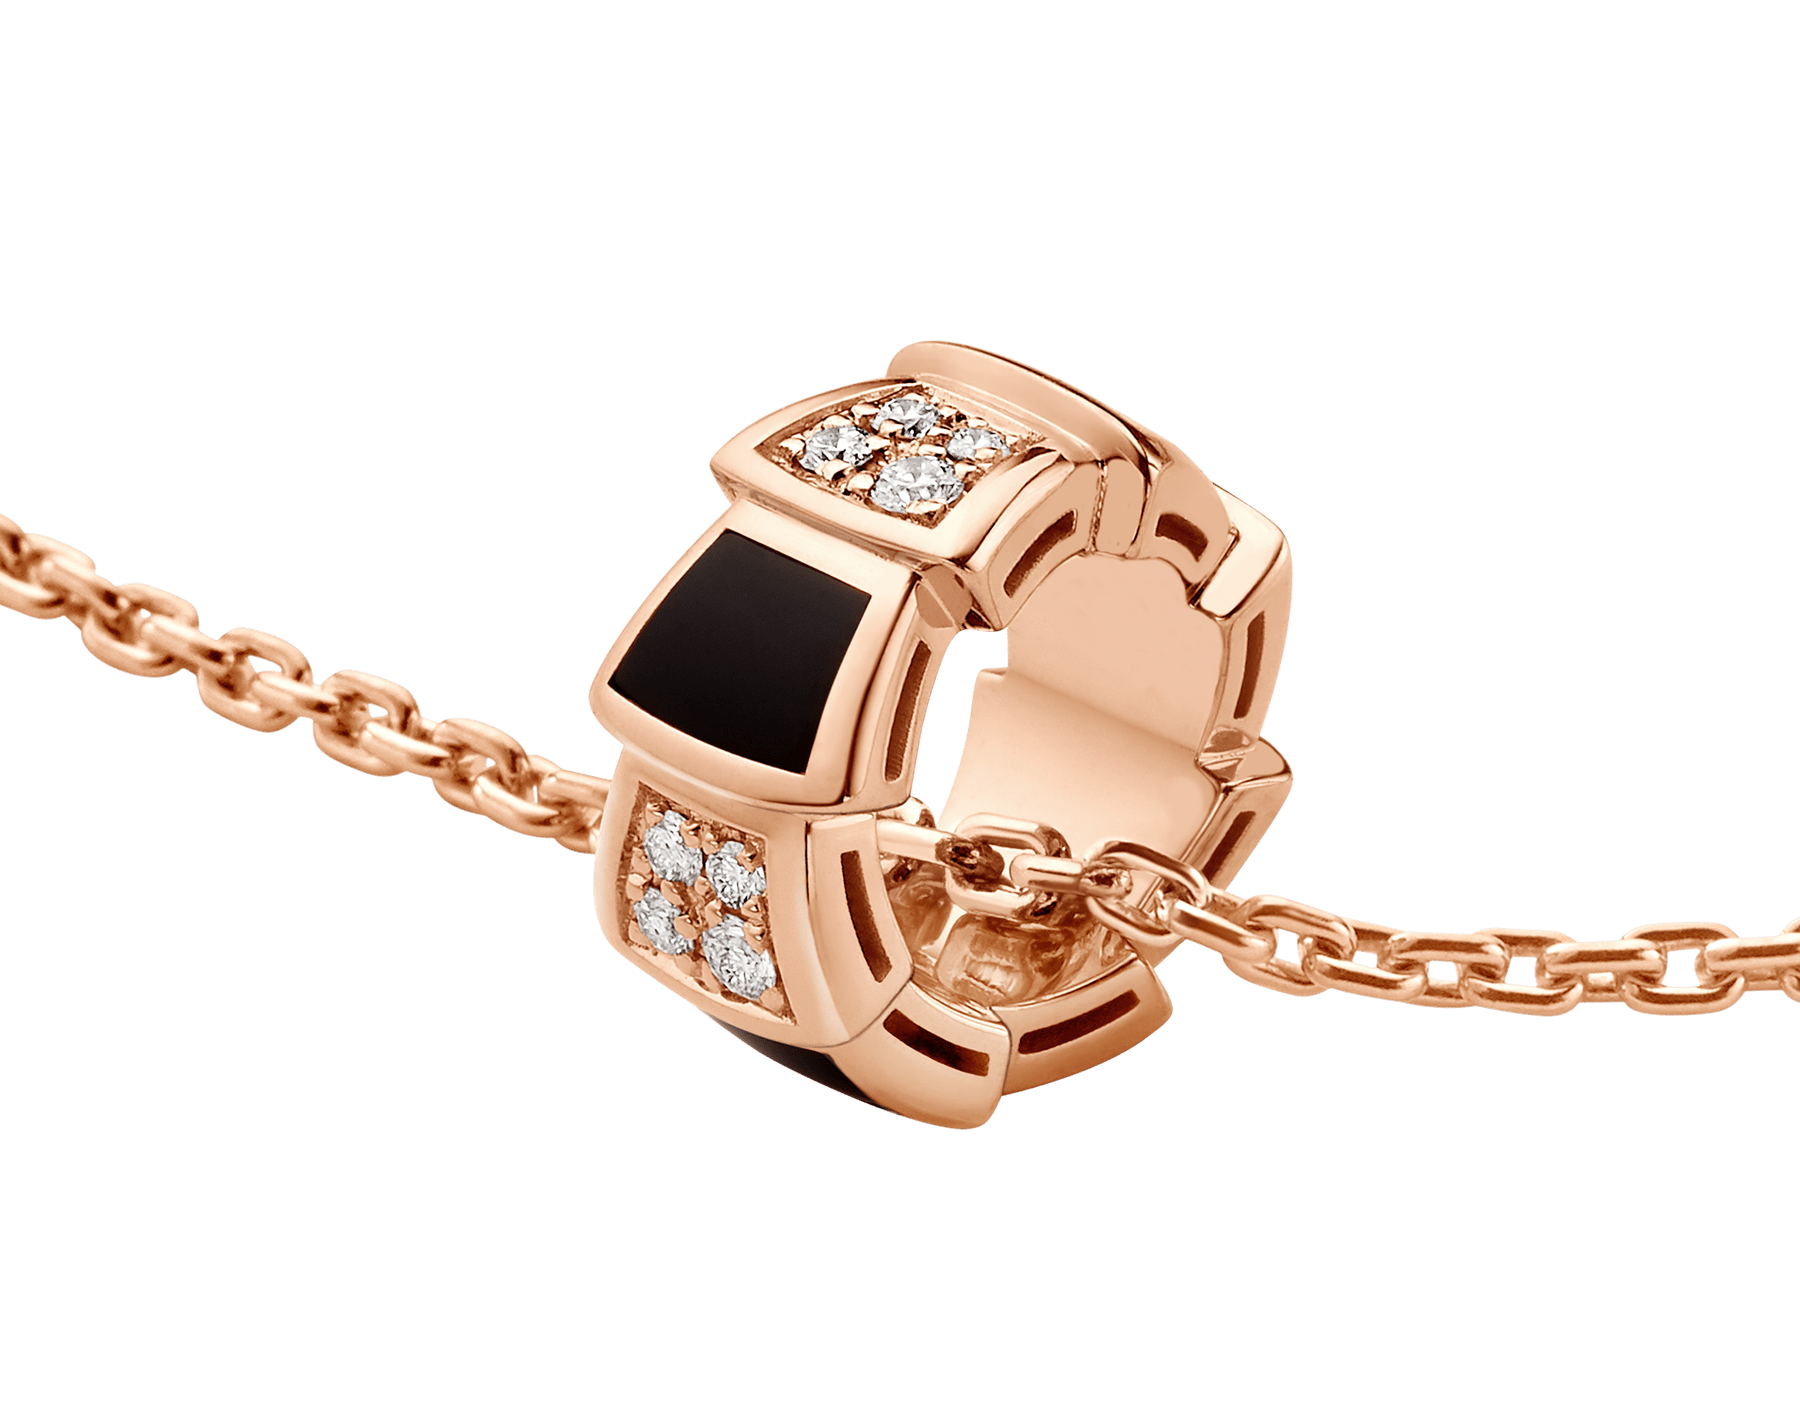 Serpenti Viper 18 kt rose gold necklace set with onyx elements and pavé diamonds (0.21 ct) on the pendant 356554 image 3